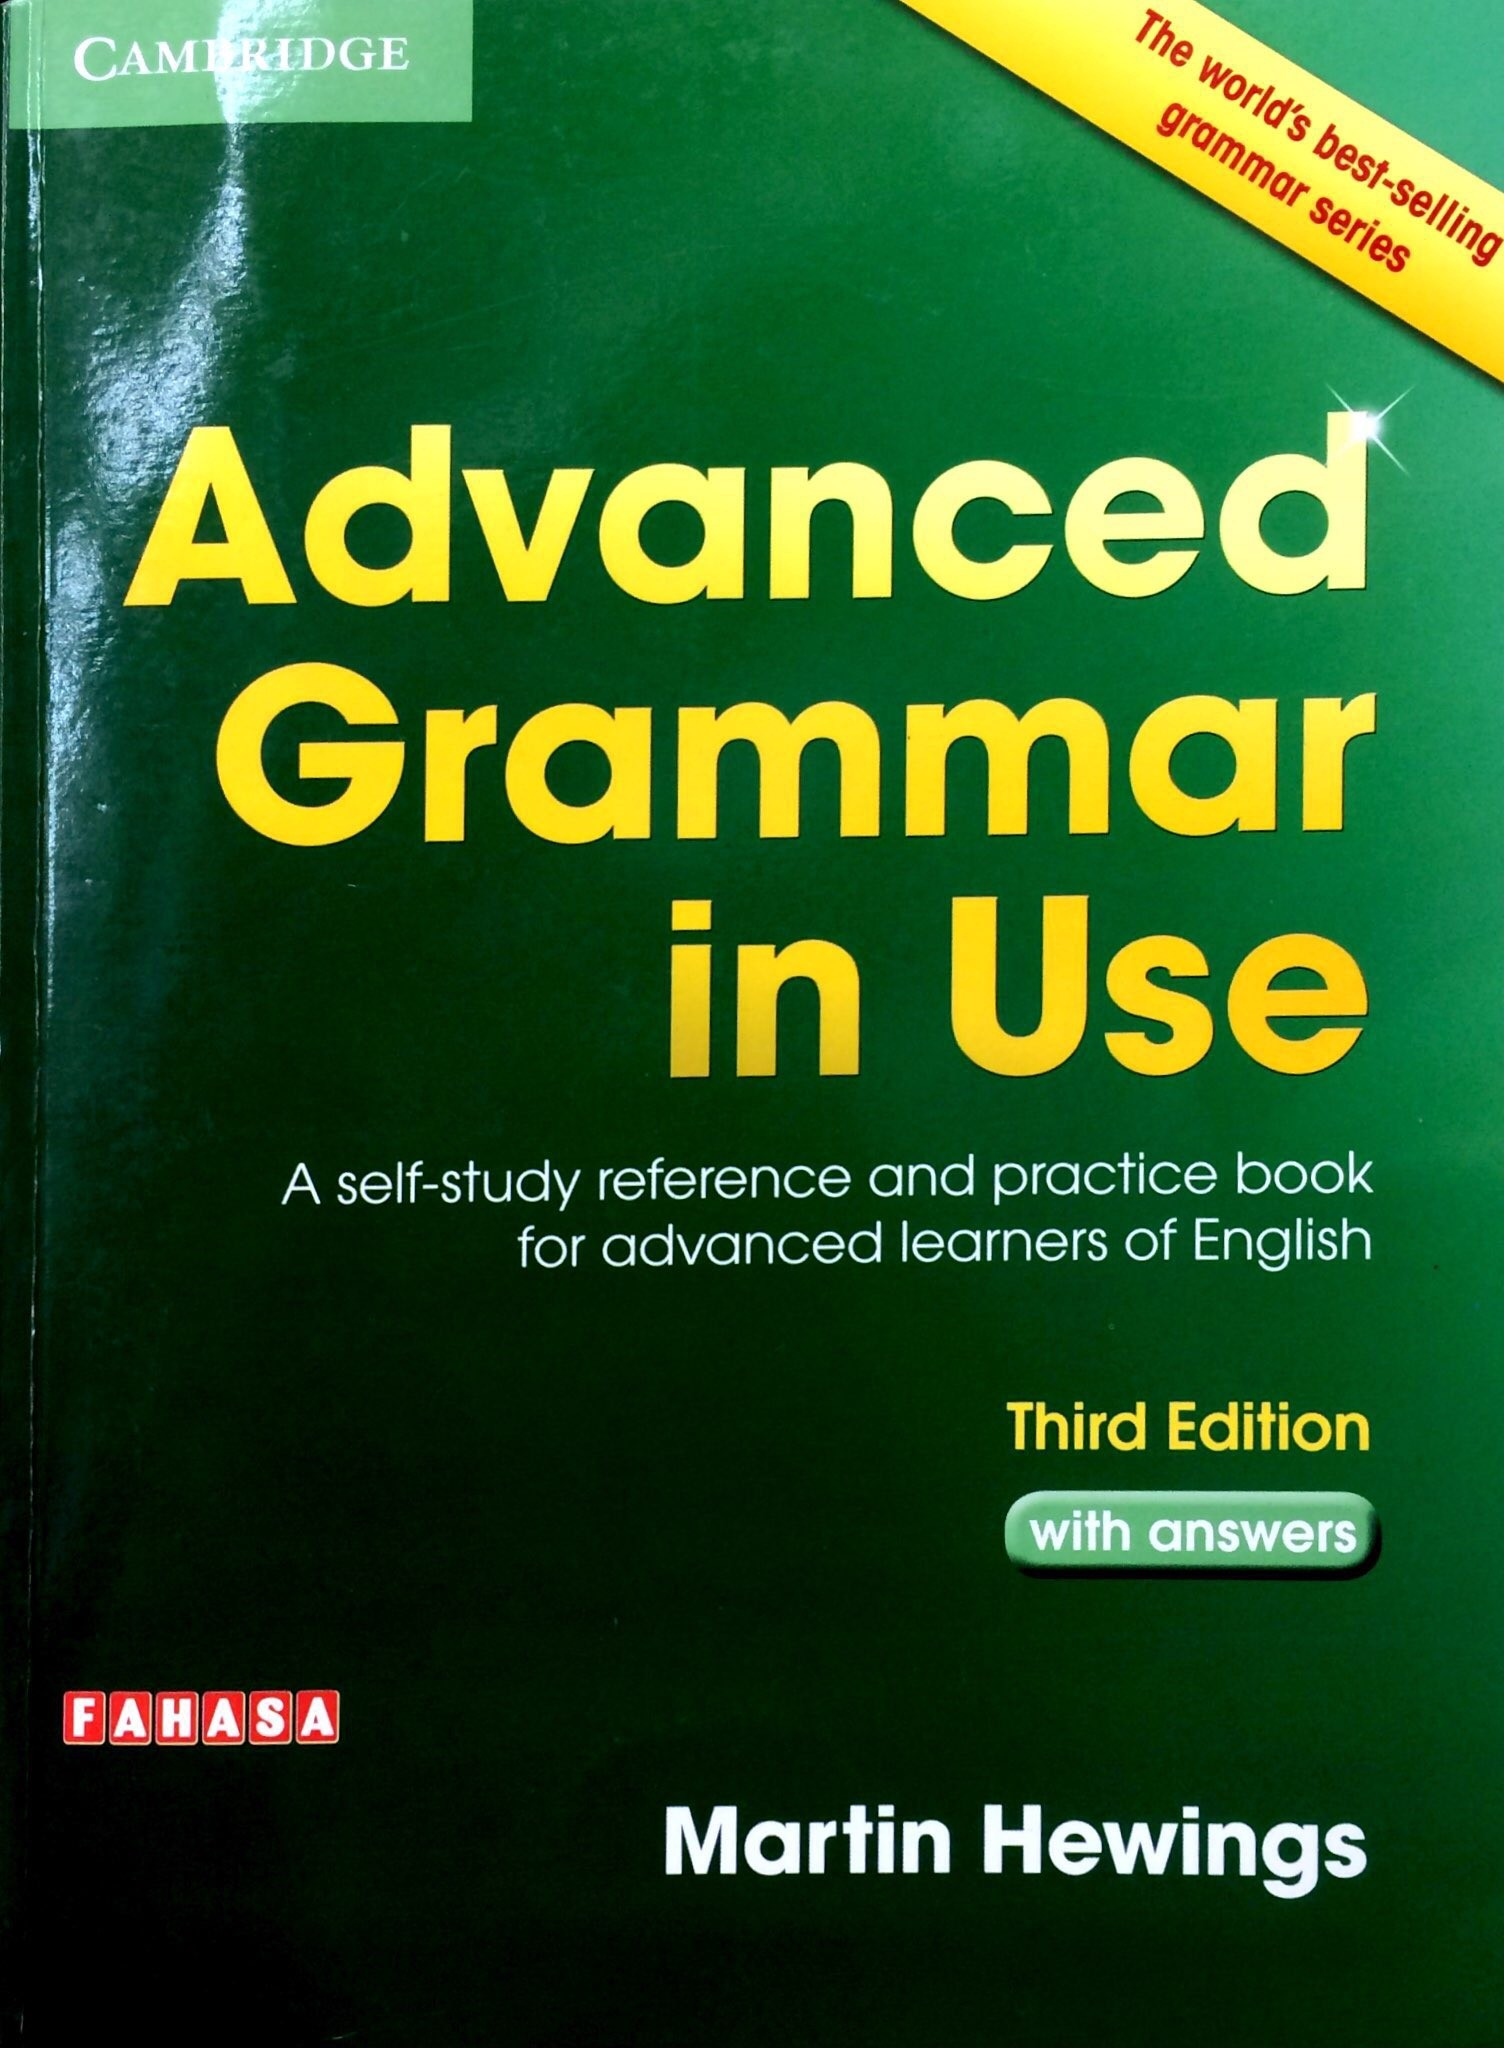 advanced grammar in use book with answers pdf